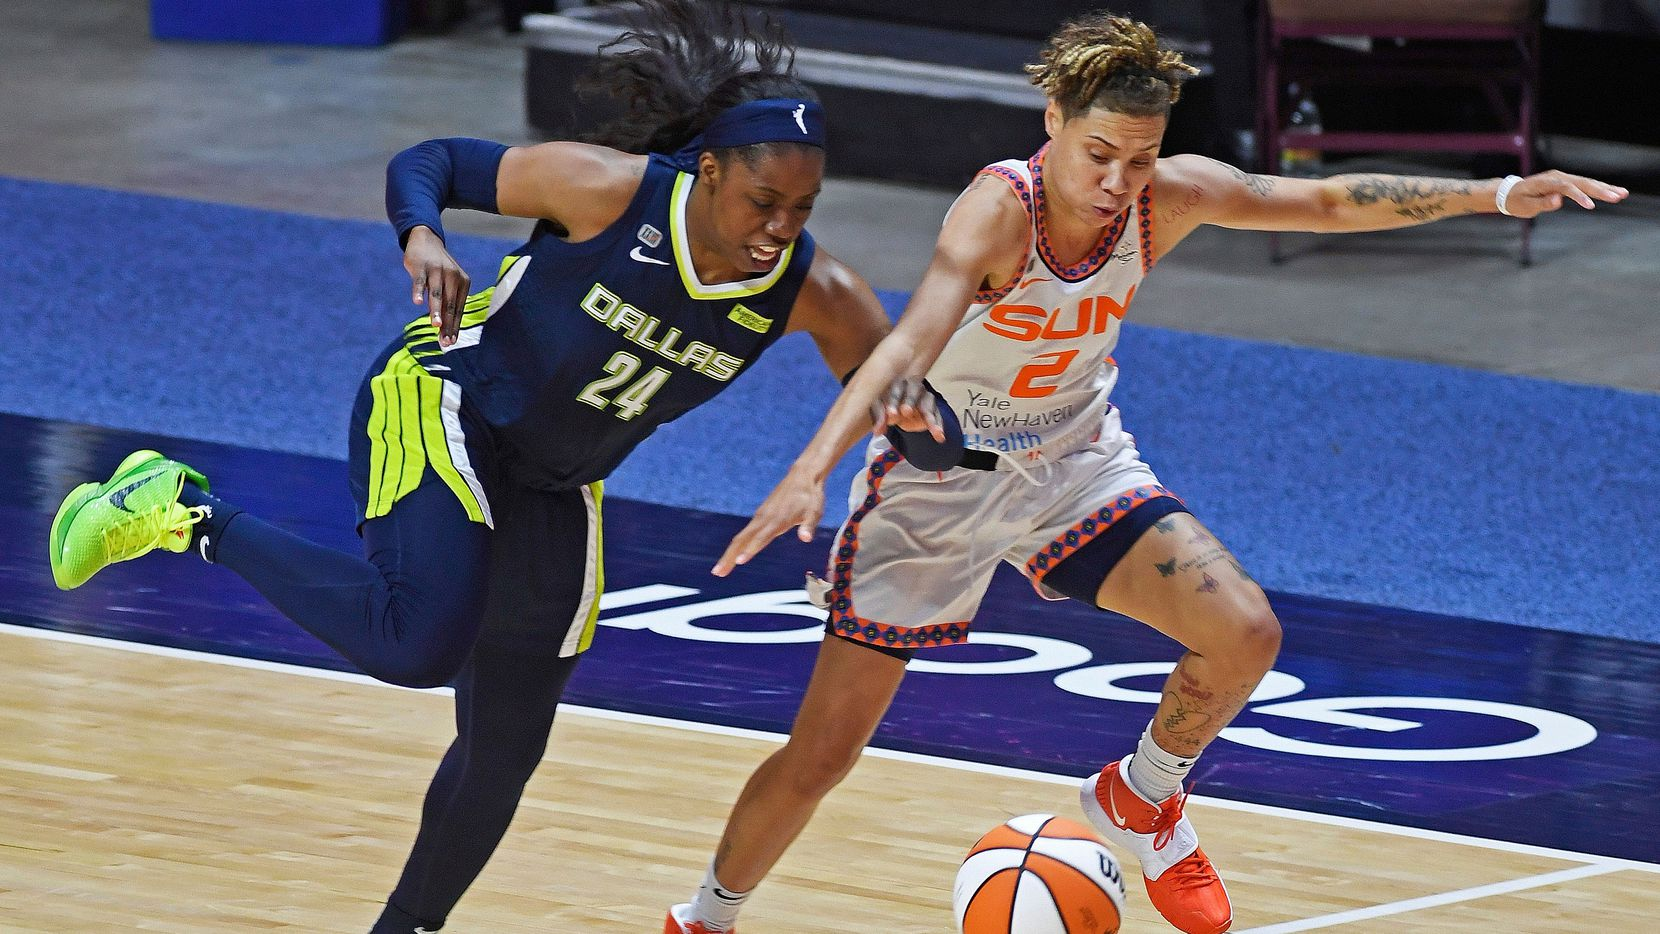 Dallas Wings guard Arike Ogunbowale deflects the ball away from Connecticut Sun guard Natisha Hiedeman during a WNBA basketball game Tuesday, June 22, 2021 at Mohegan Sun Arena in Uncasville, Conn.